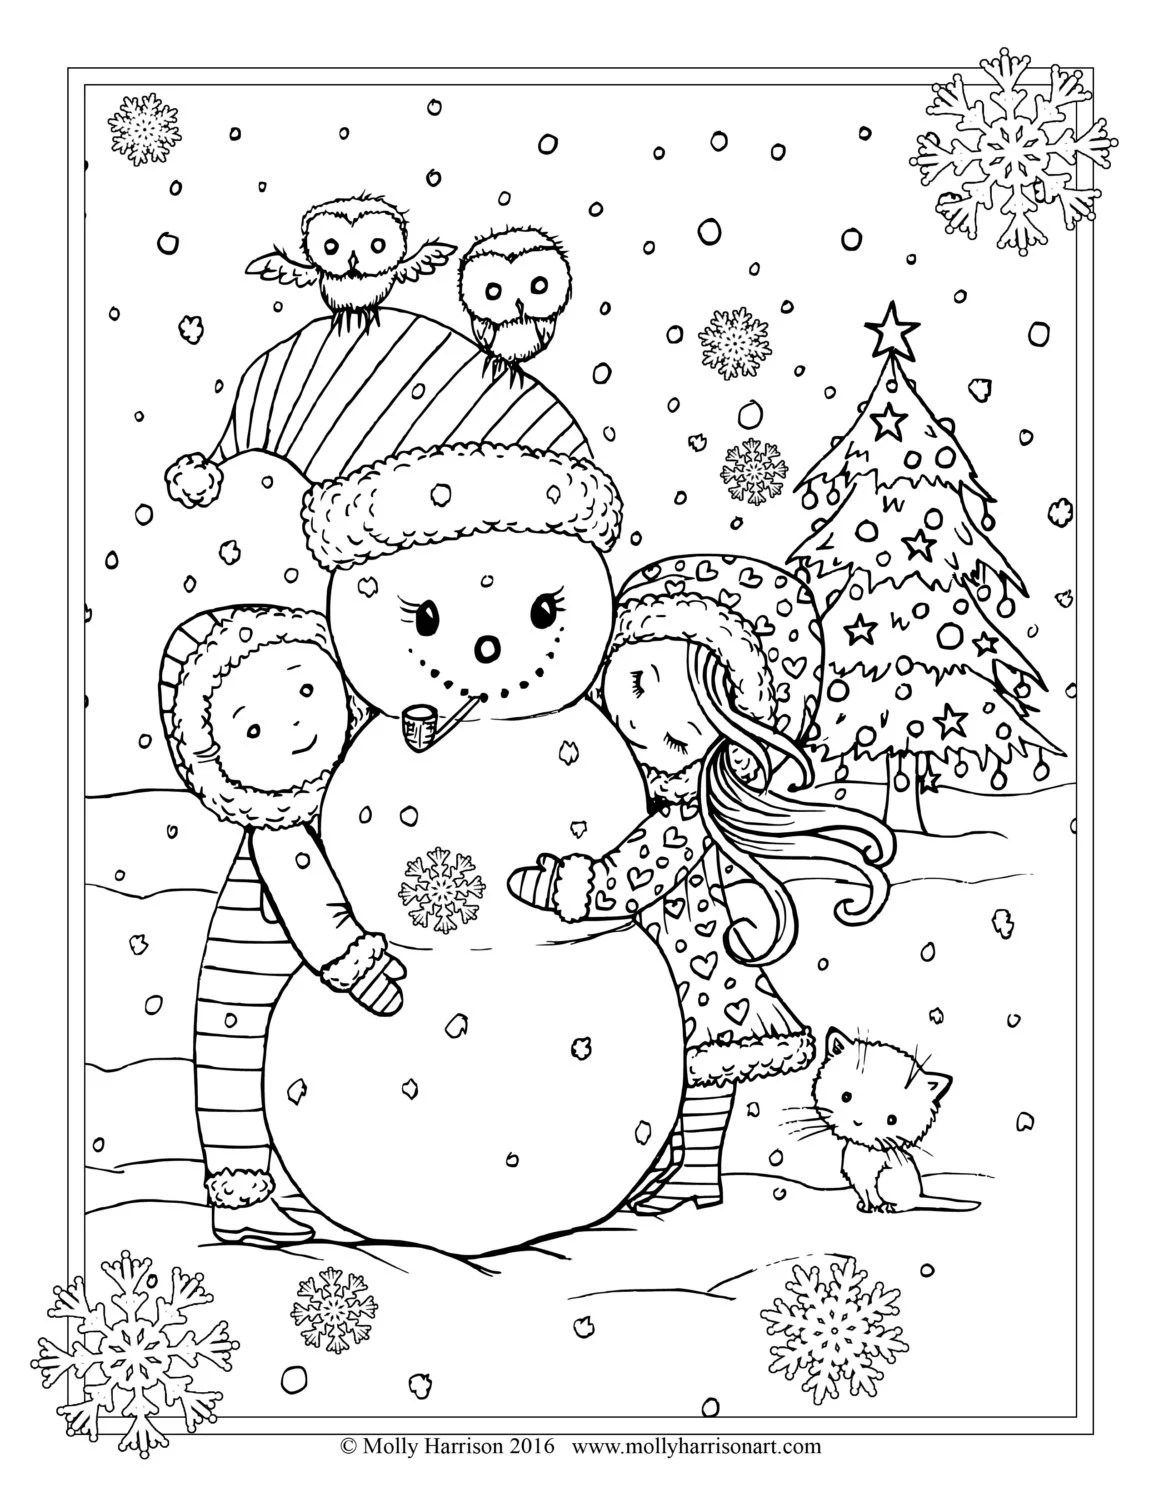 Children With Snowman And Owls Coloring Page Printable